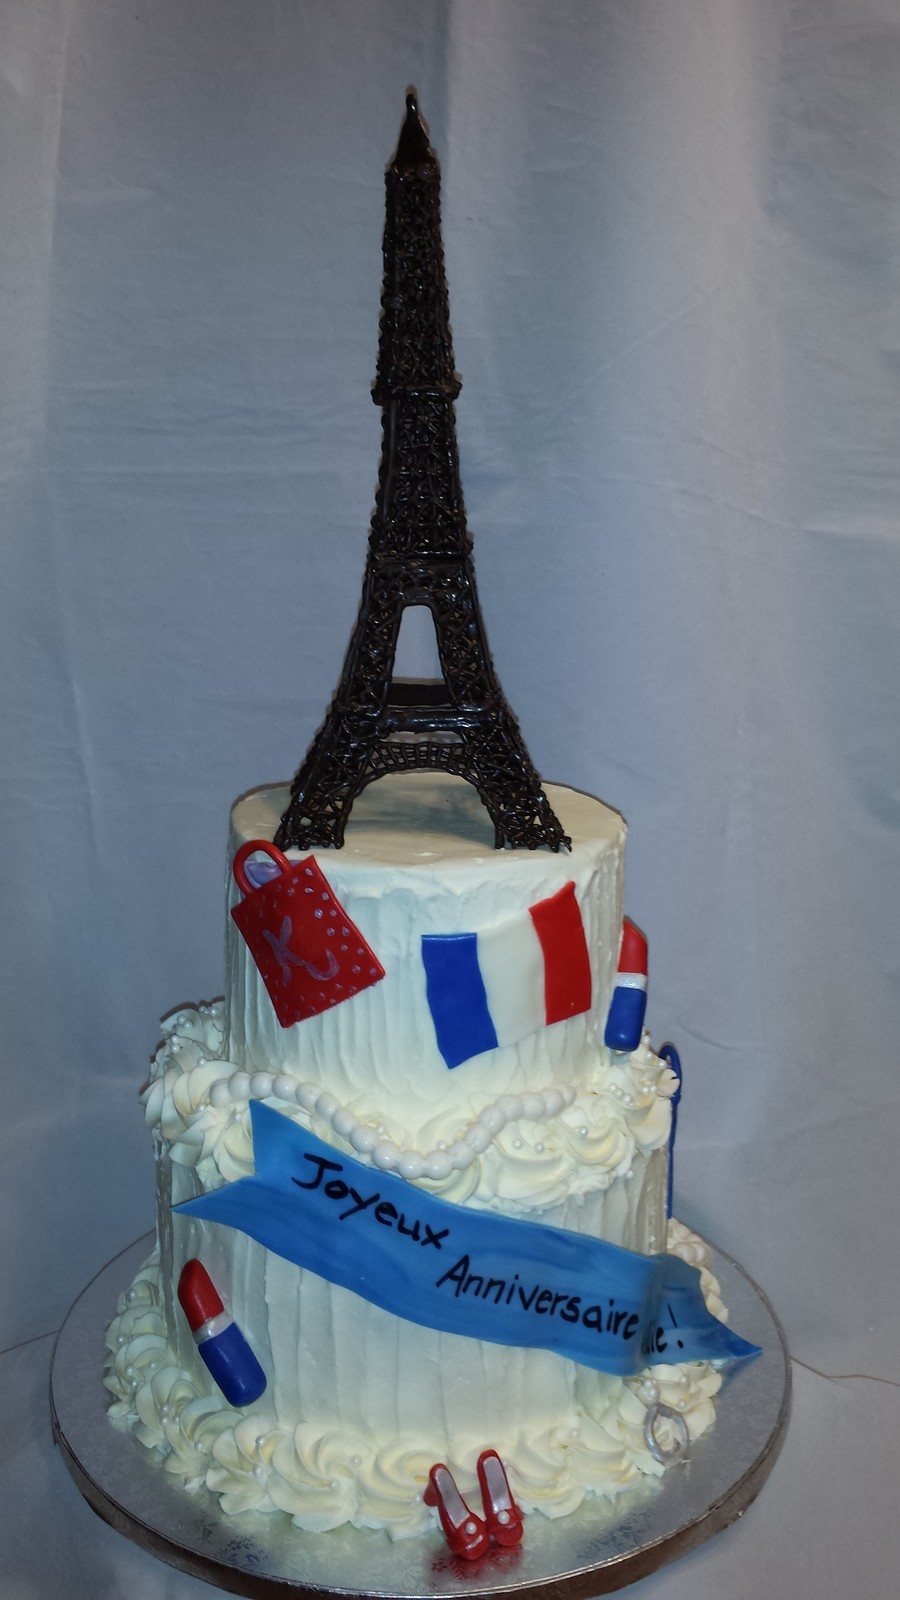 A Birthday Cake For The Clients Wife Their Daughter Designed The